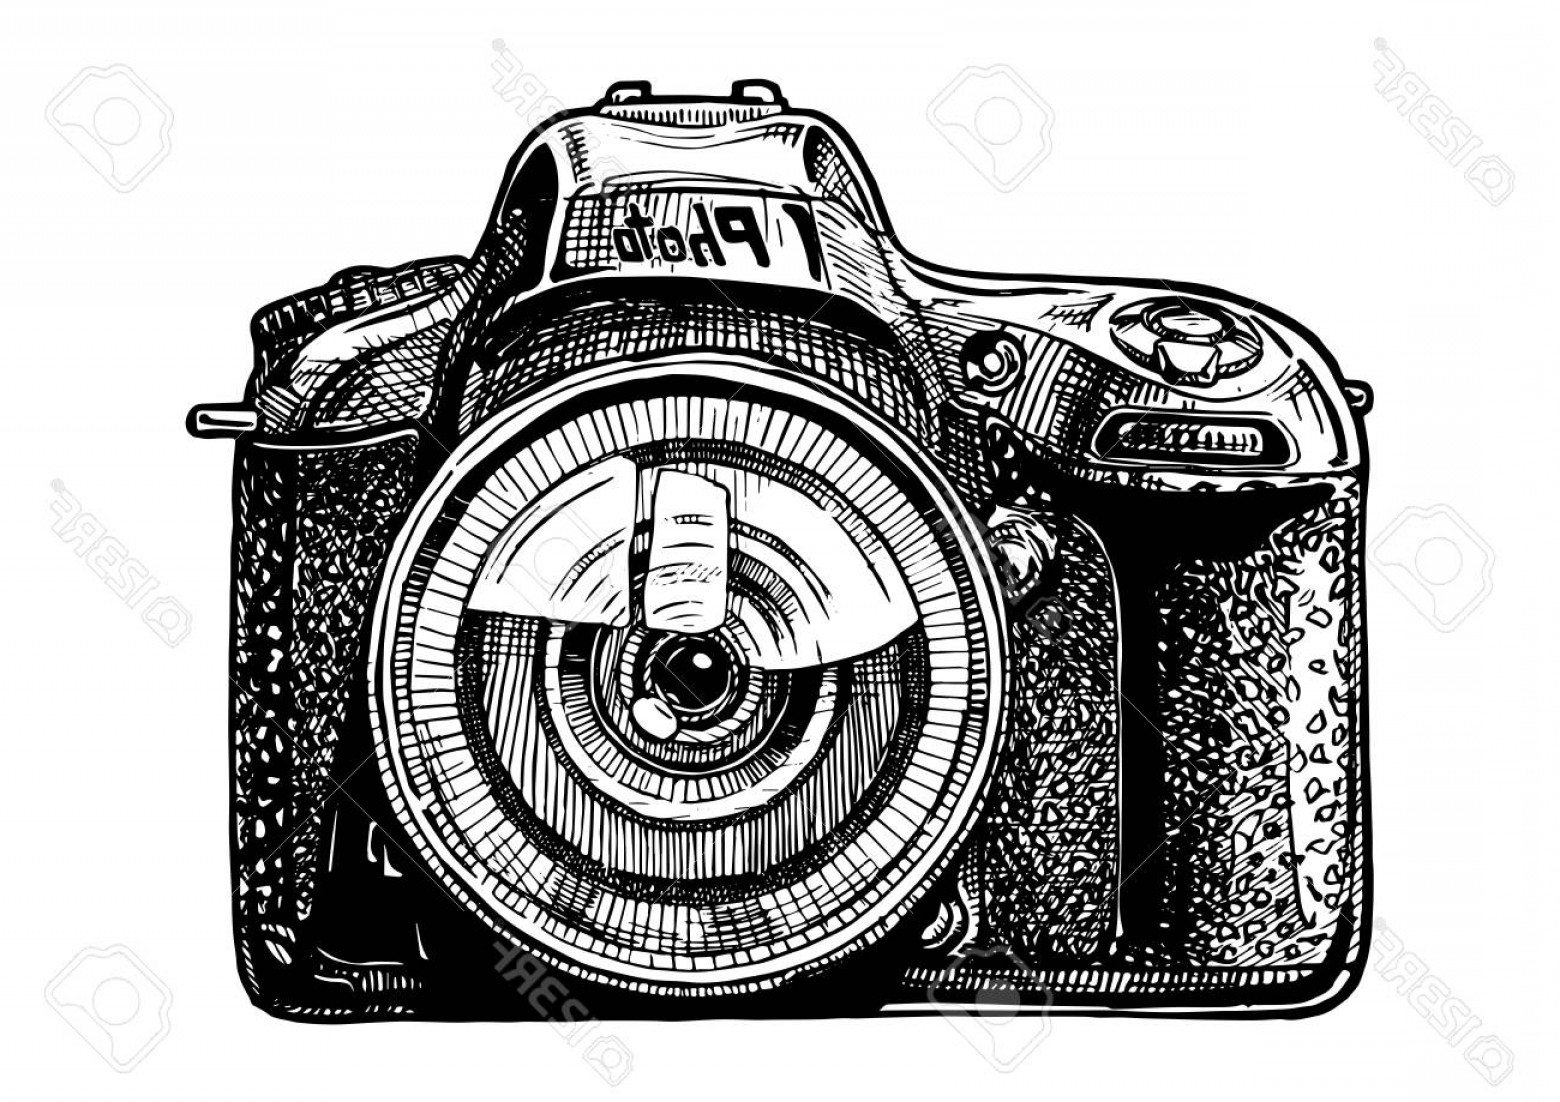 SLR Camera Vector: Photostock Vector Vector Hand Drawn Sketch Of Slr Photo Camera In Vintage Engraved Style On White Background